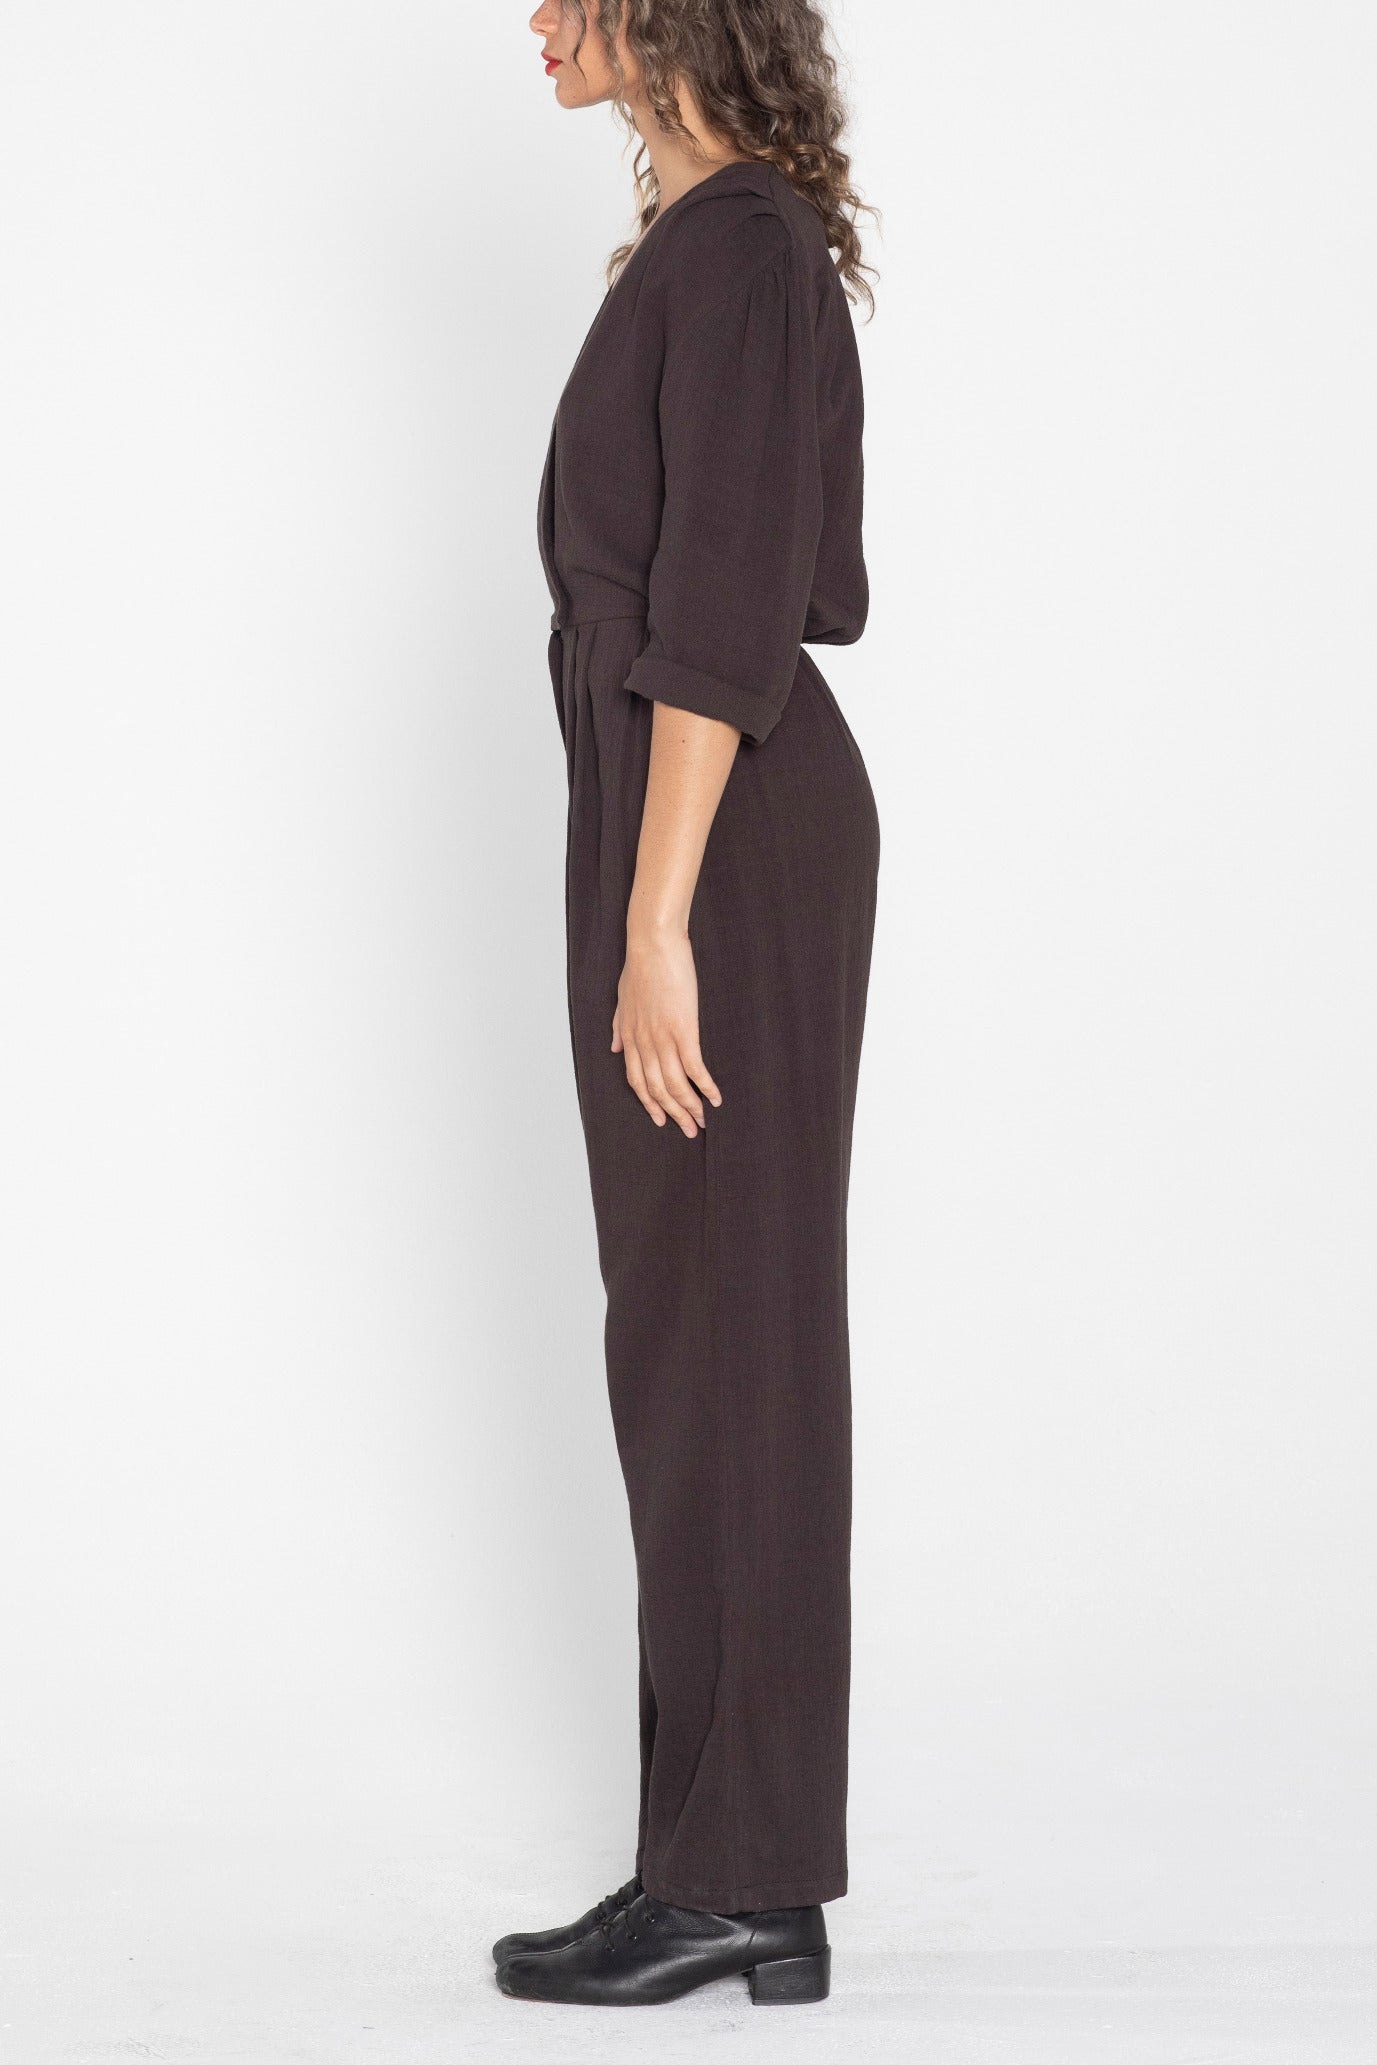 Aquarius Jumpsuit Solid